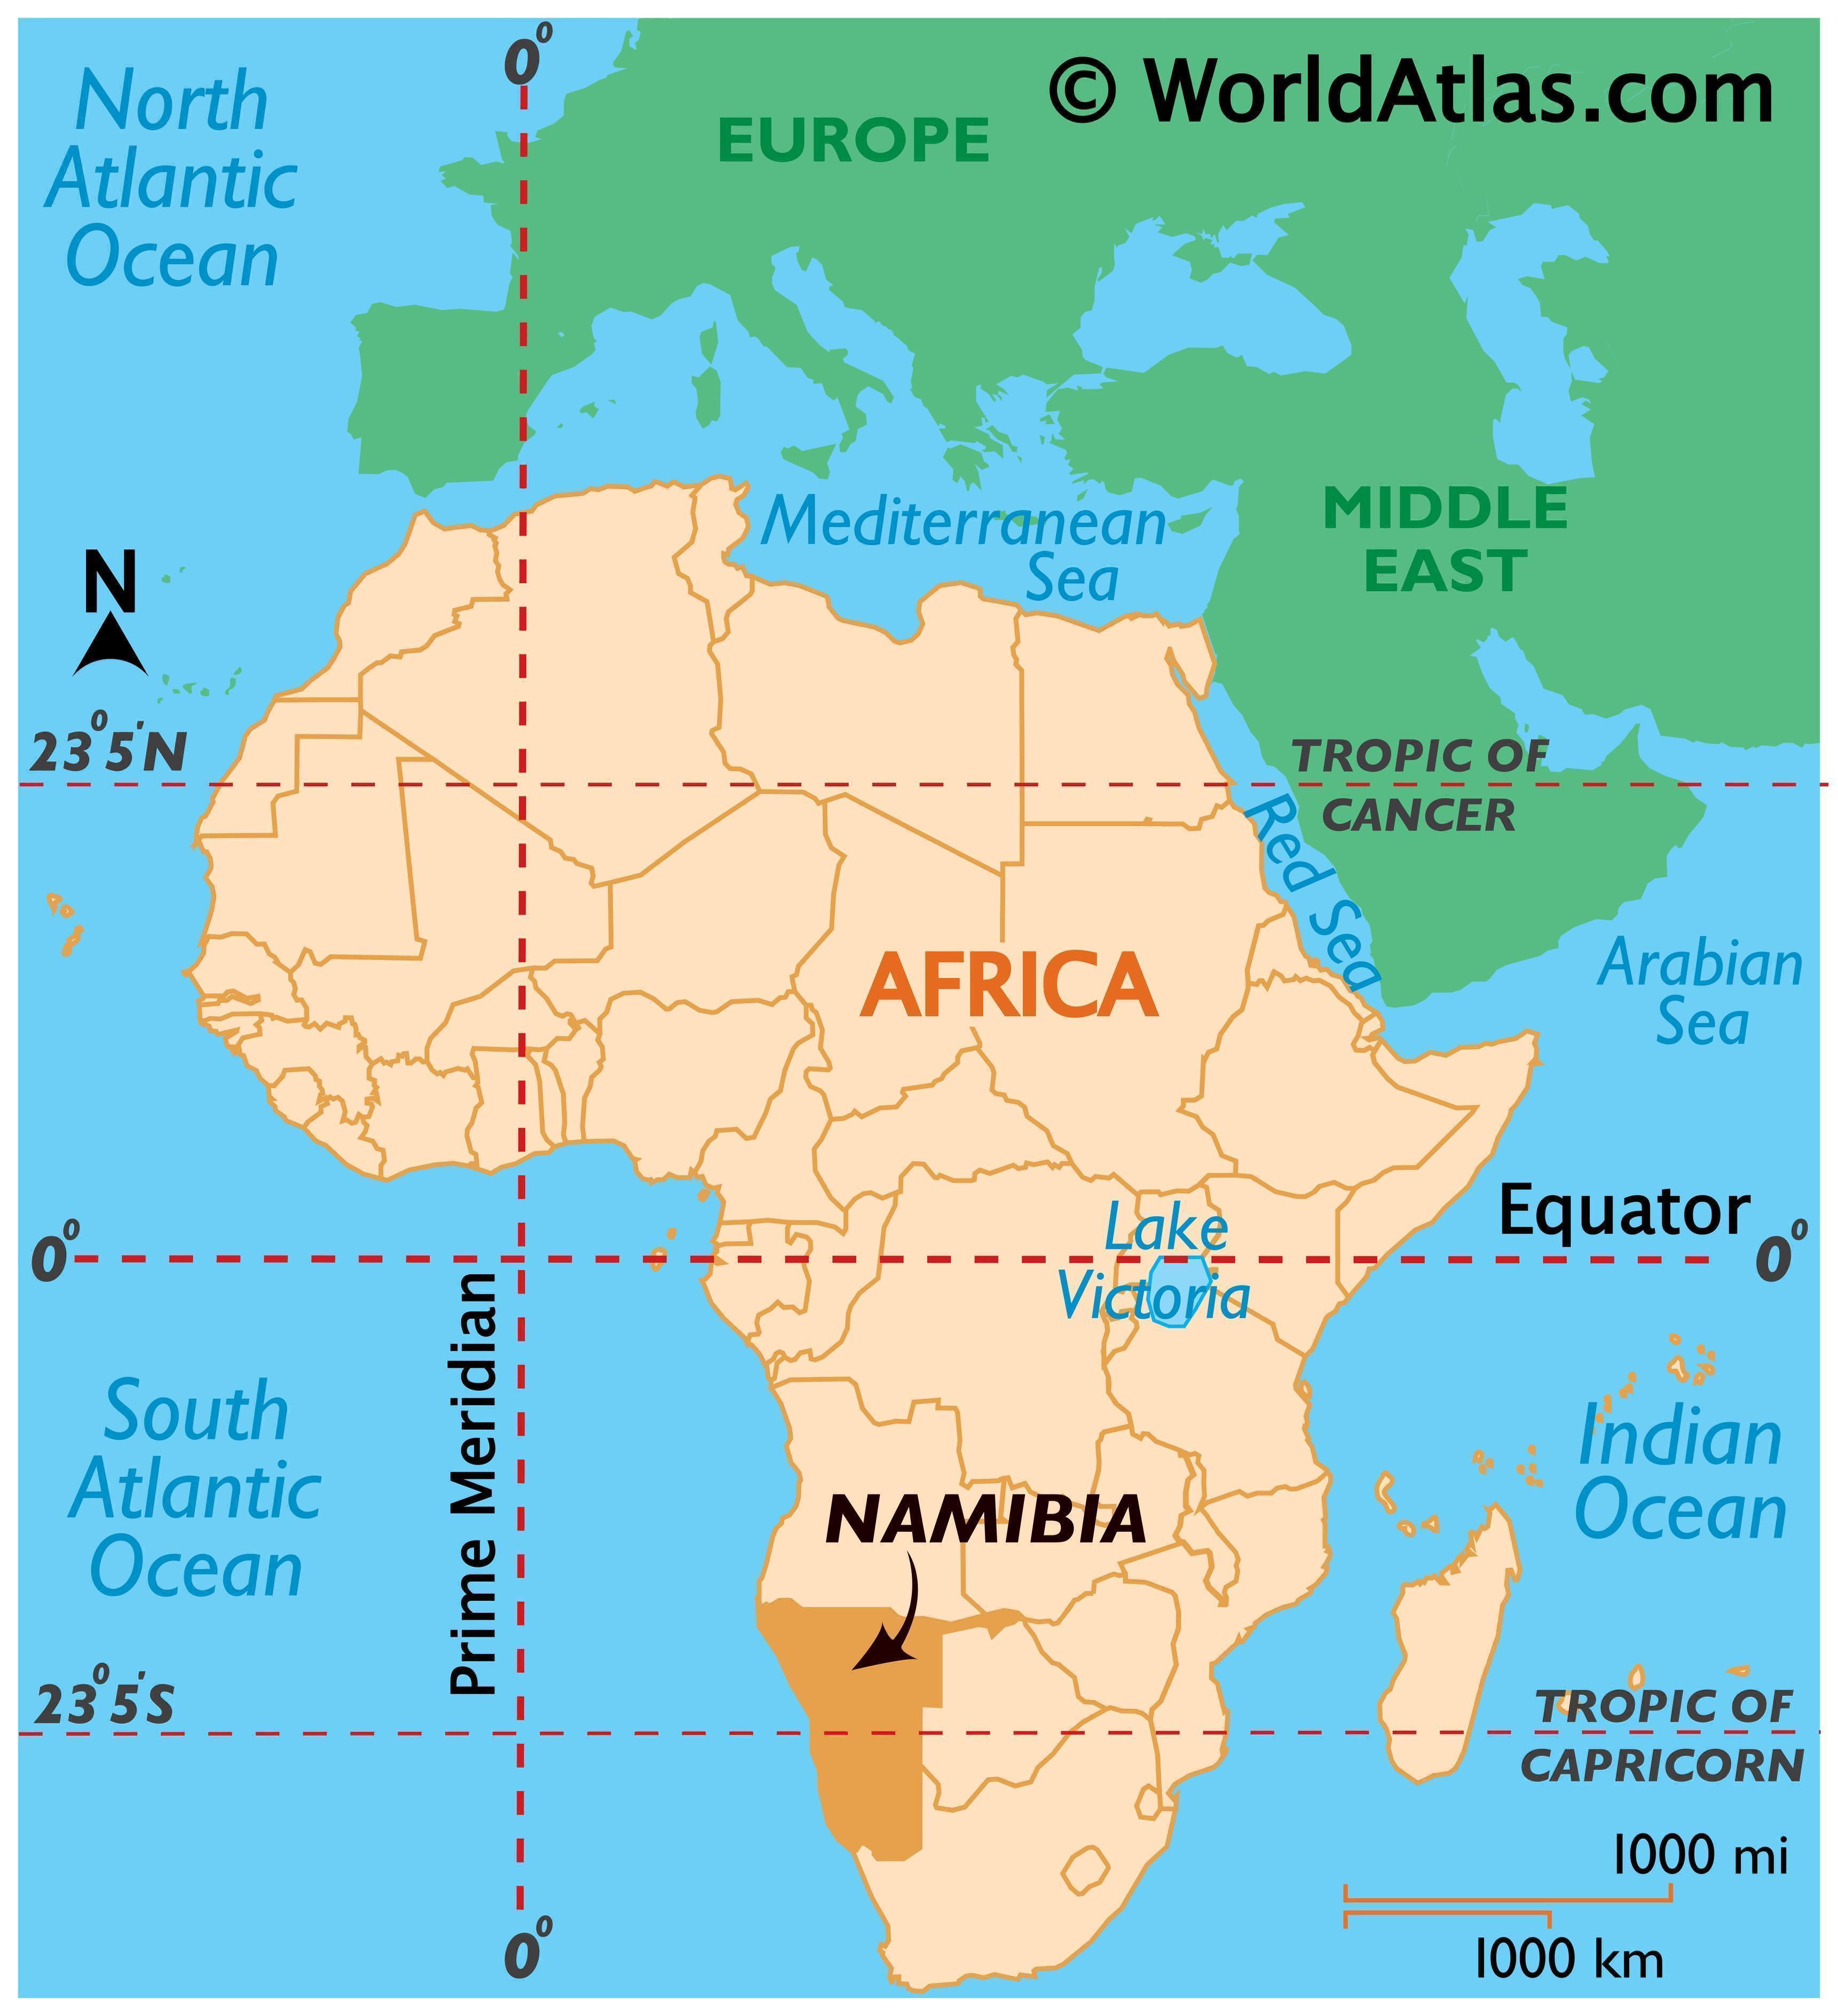 Map showing location of Namibia in the world.